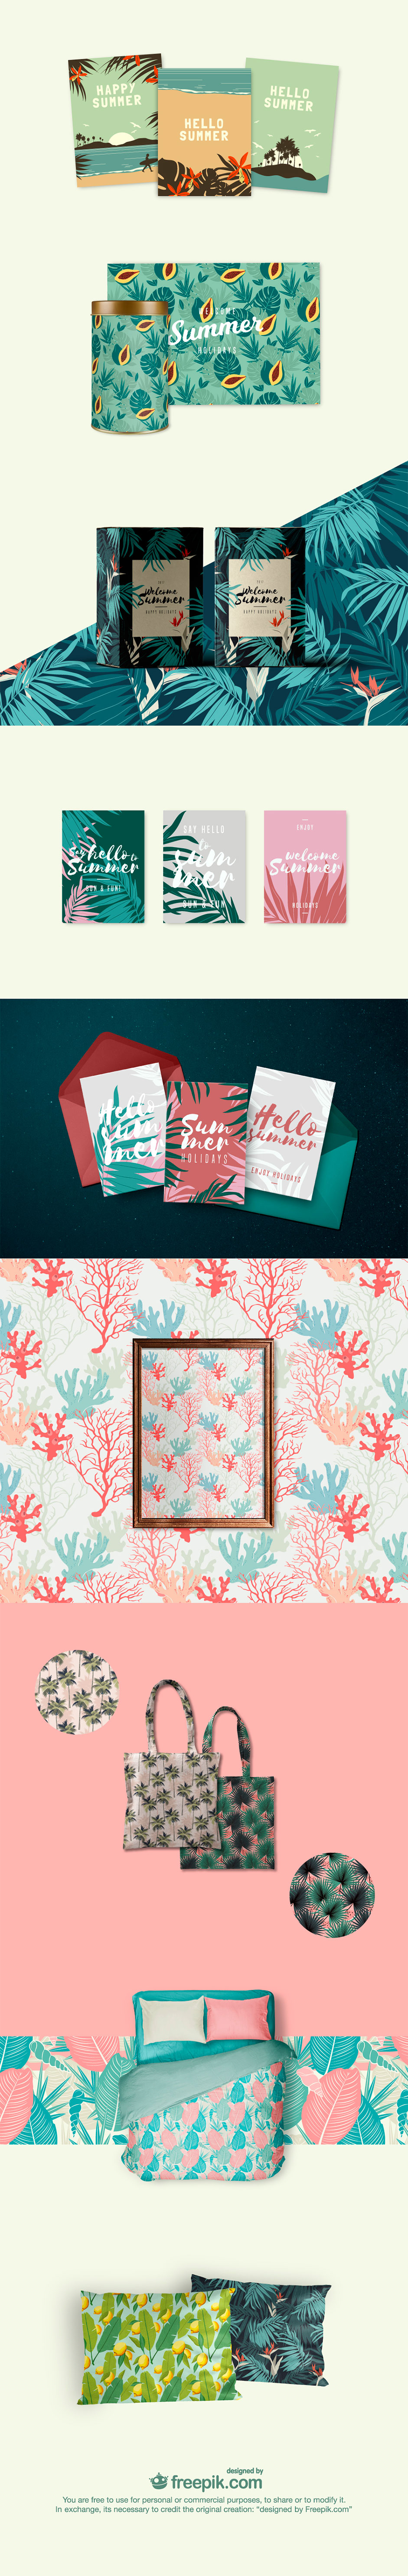 Free Vintage Summer Vectors and Patterns